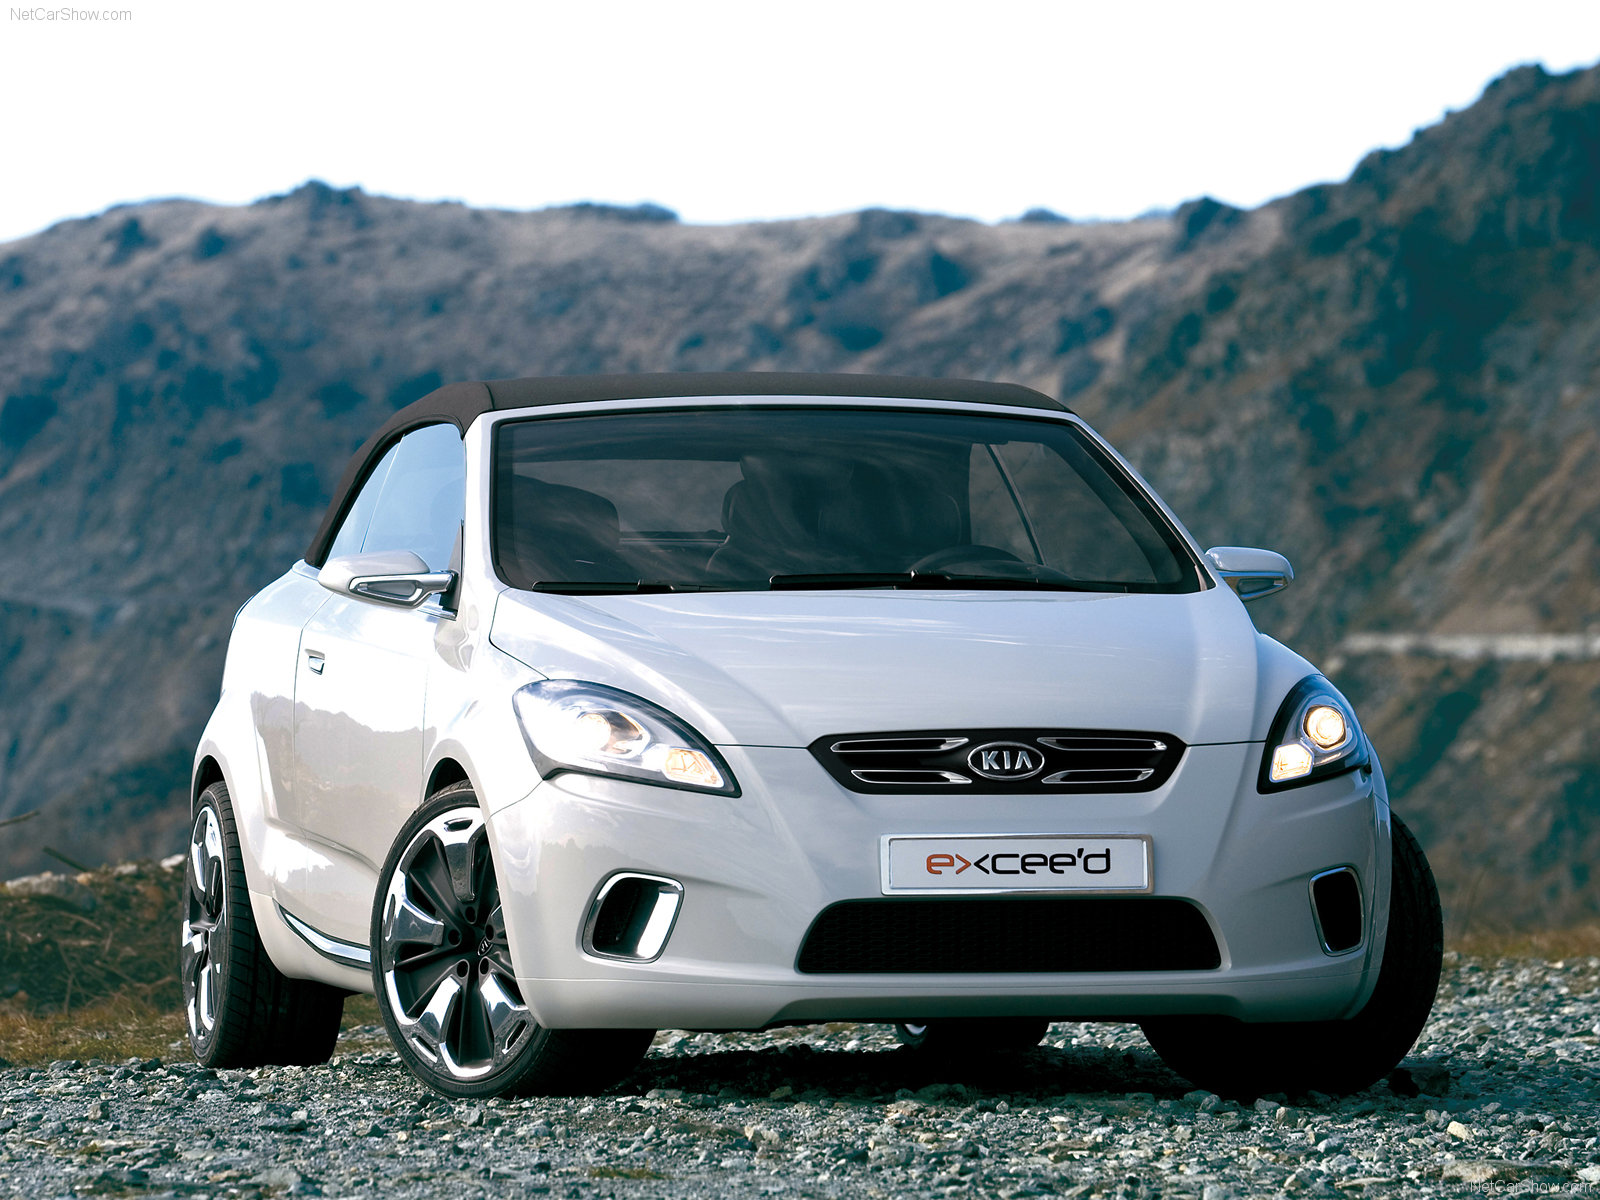 Kia ex cee-d Cabrio photo 41783